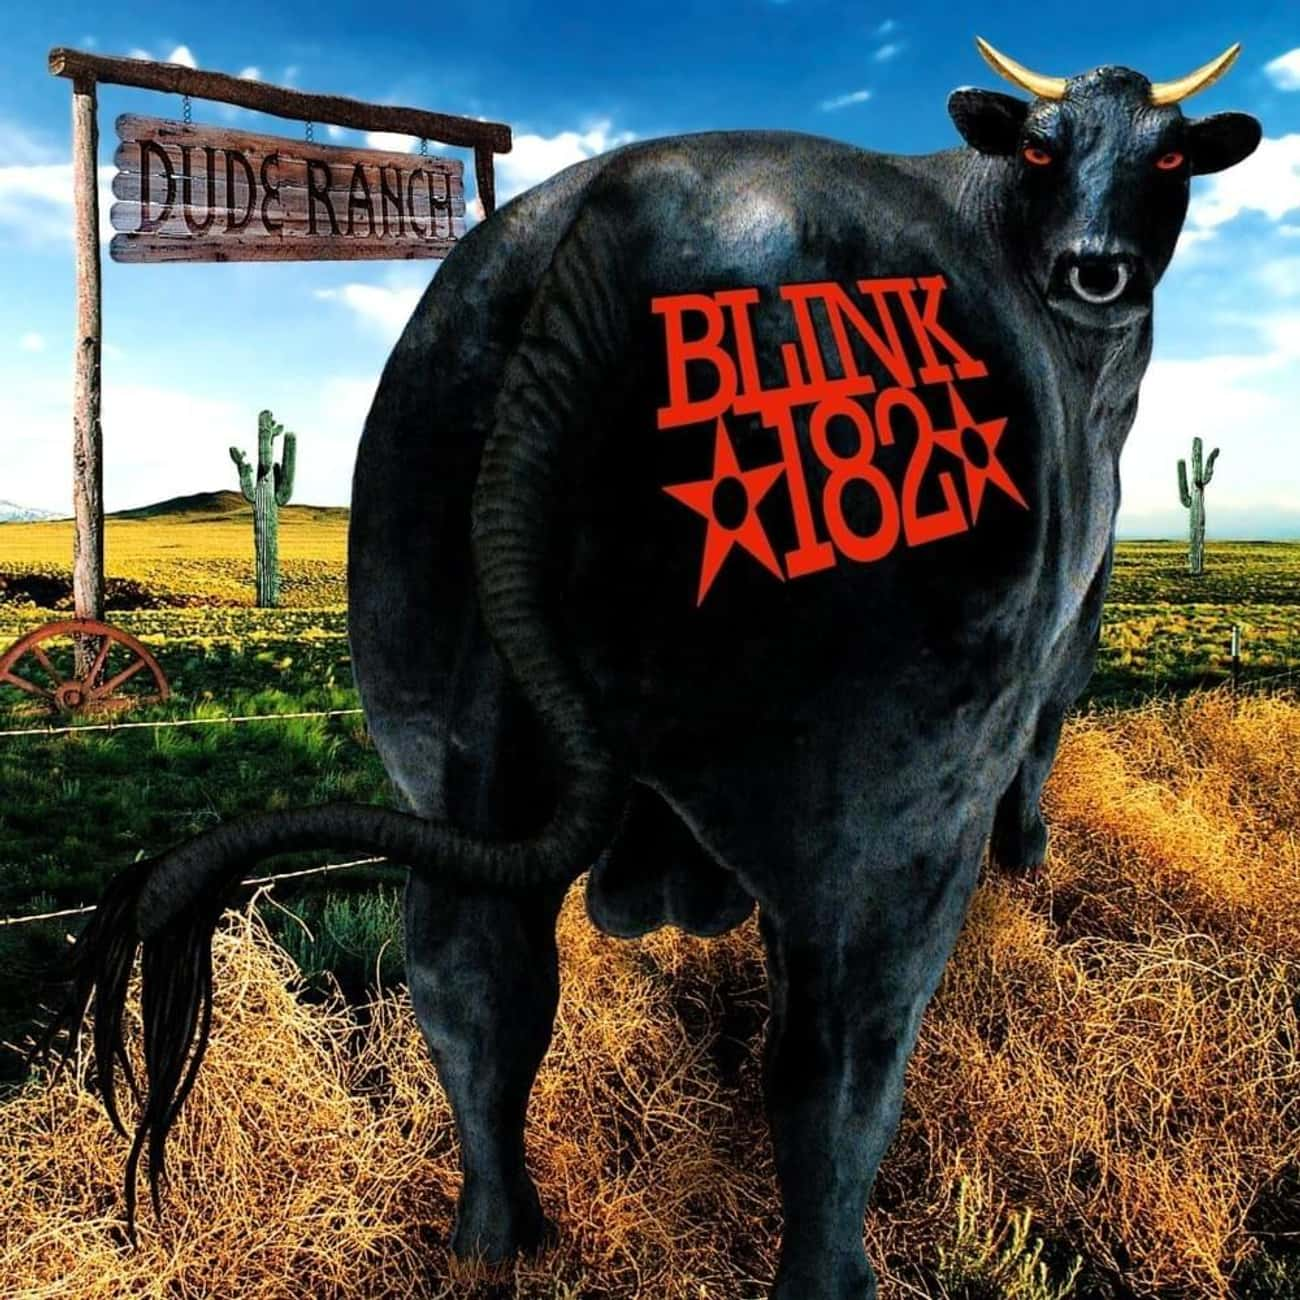 Dude Ranch is listed (or ranked) 4 on the list The Best Blink-182 Albums of All-Time